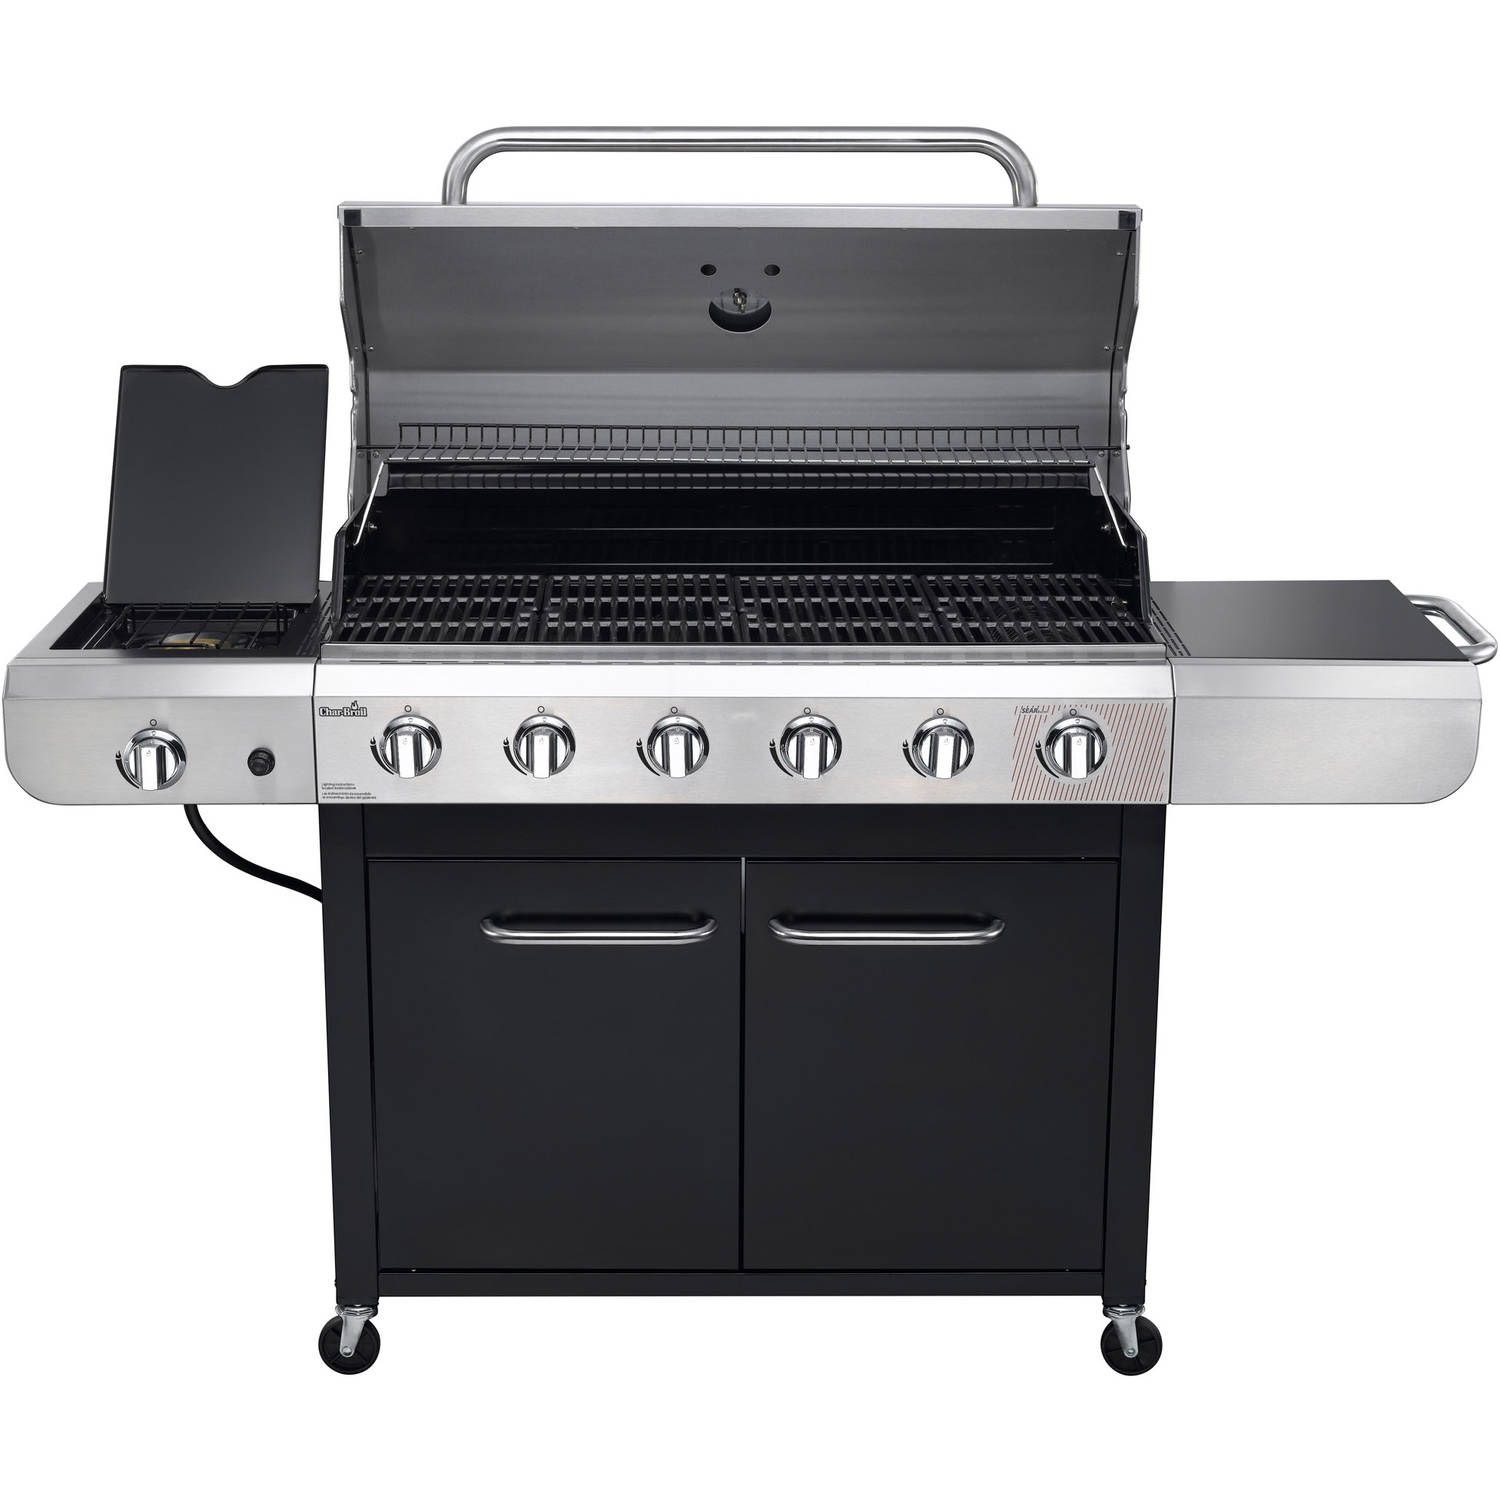 Char Broil Convective 6 Burner Grill Stainless Steel Black